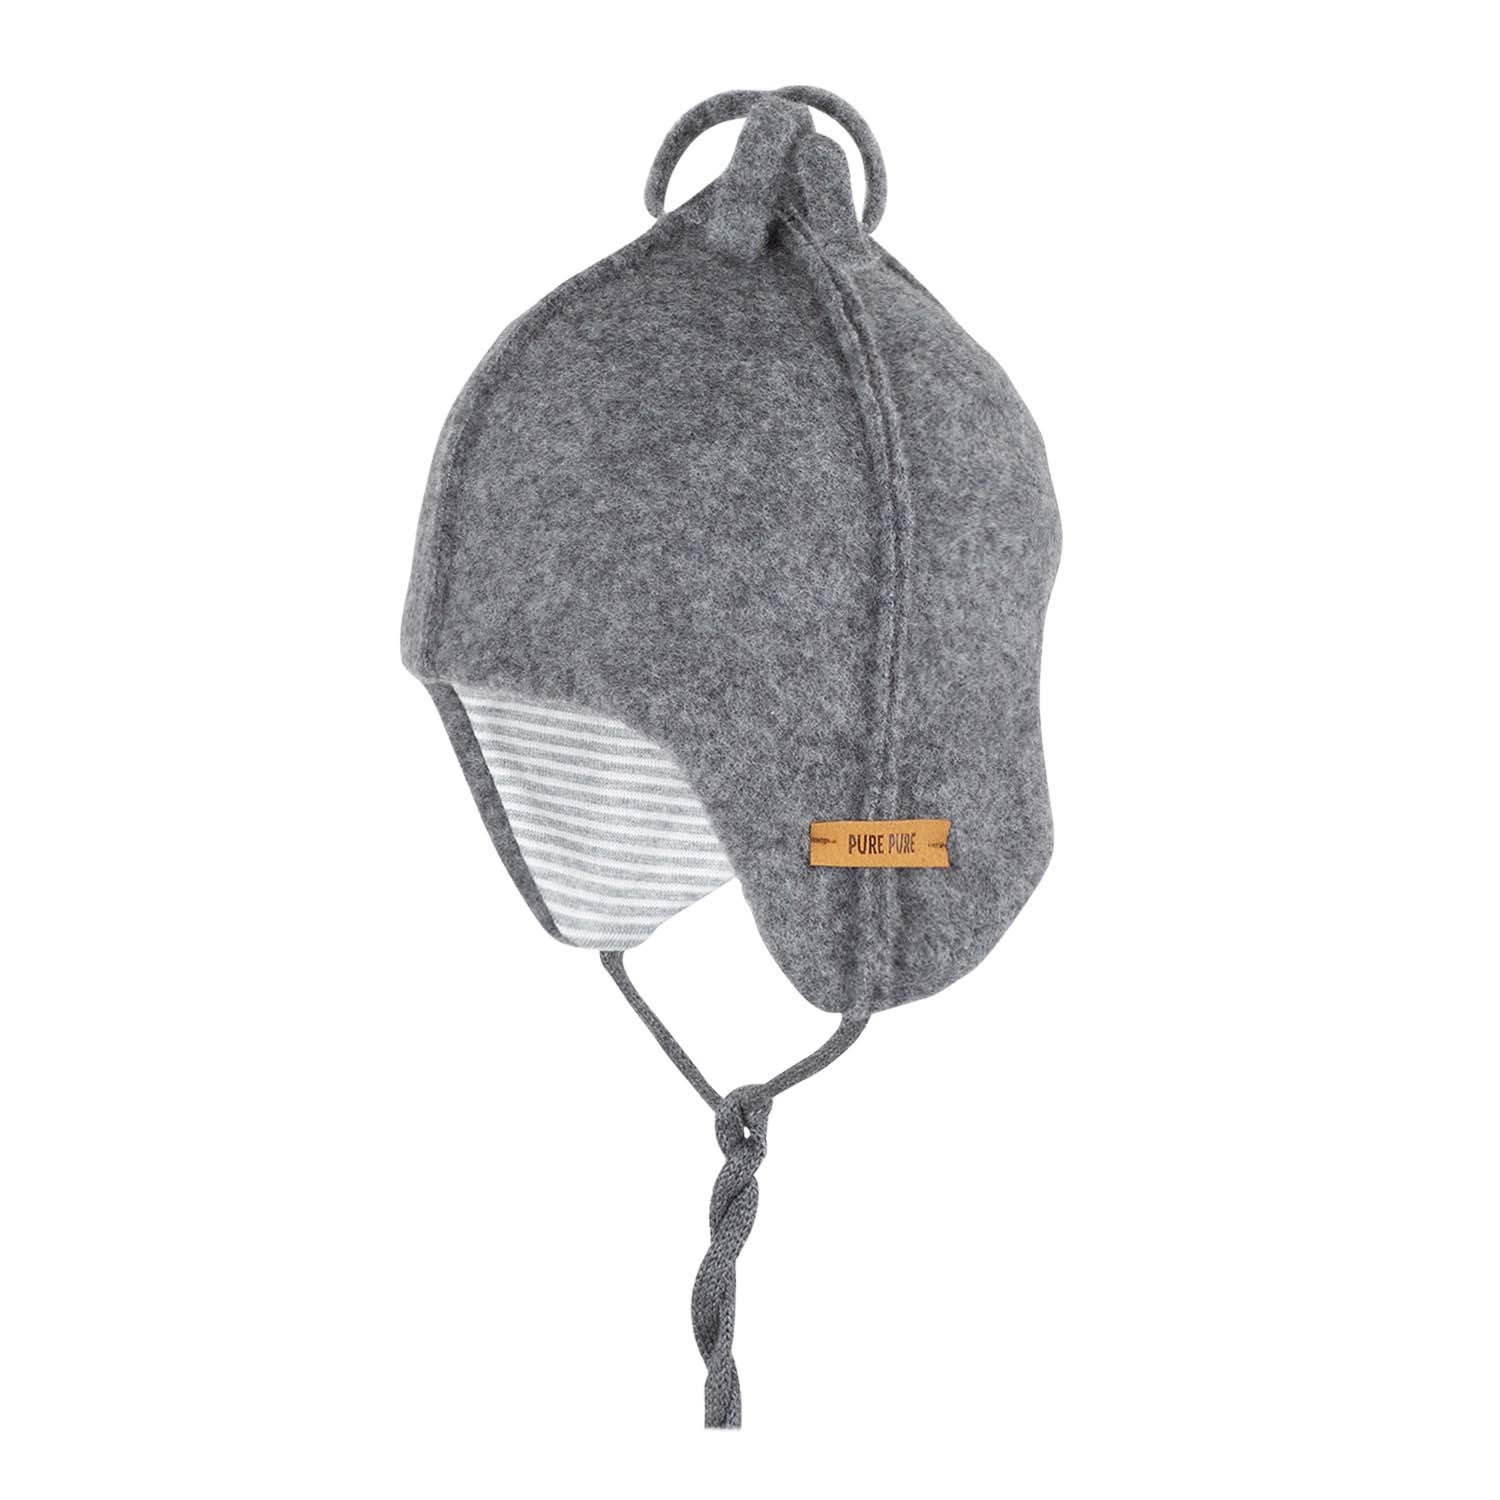 Pure Pure by Bauer - woolen hat  -  100% organic merino wool fleece - grey